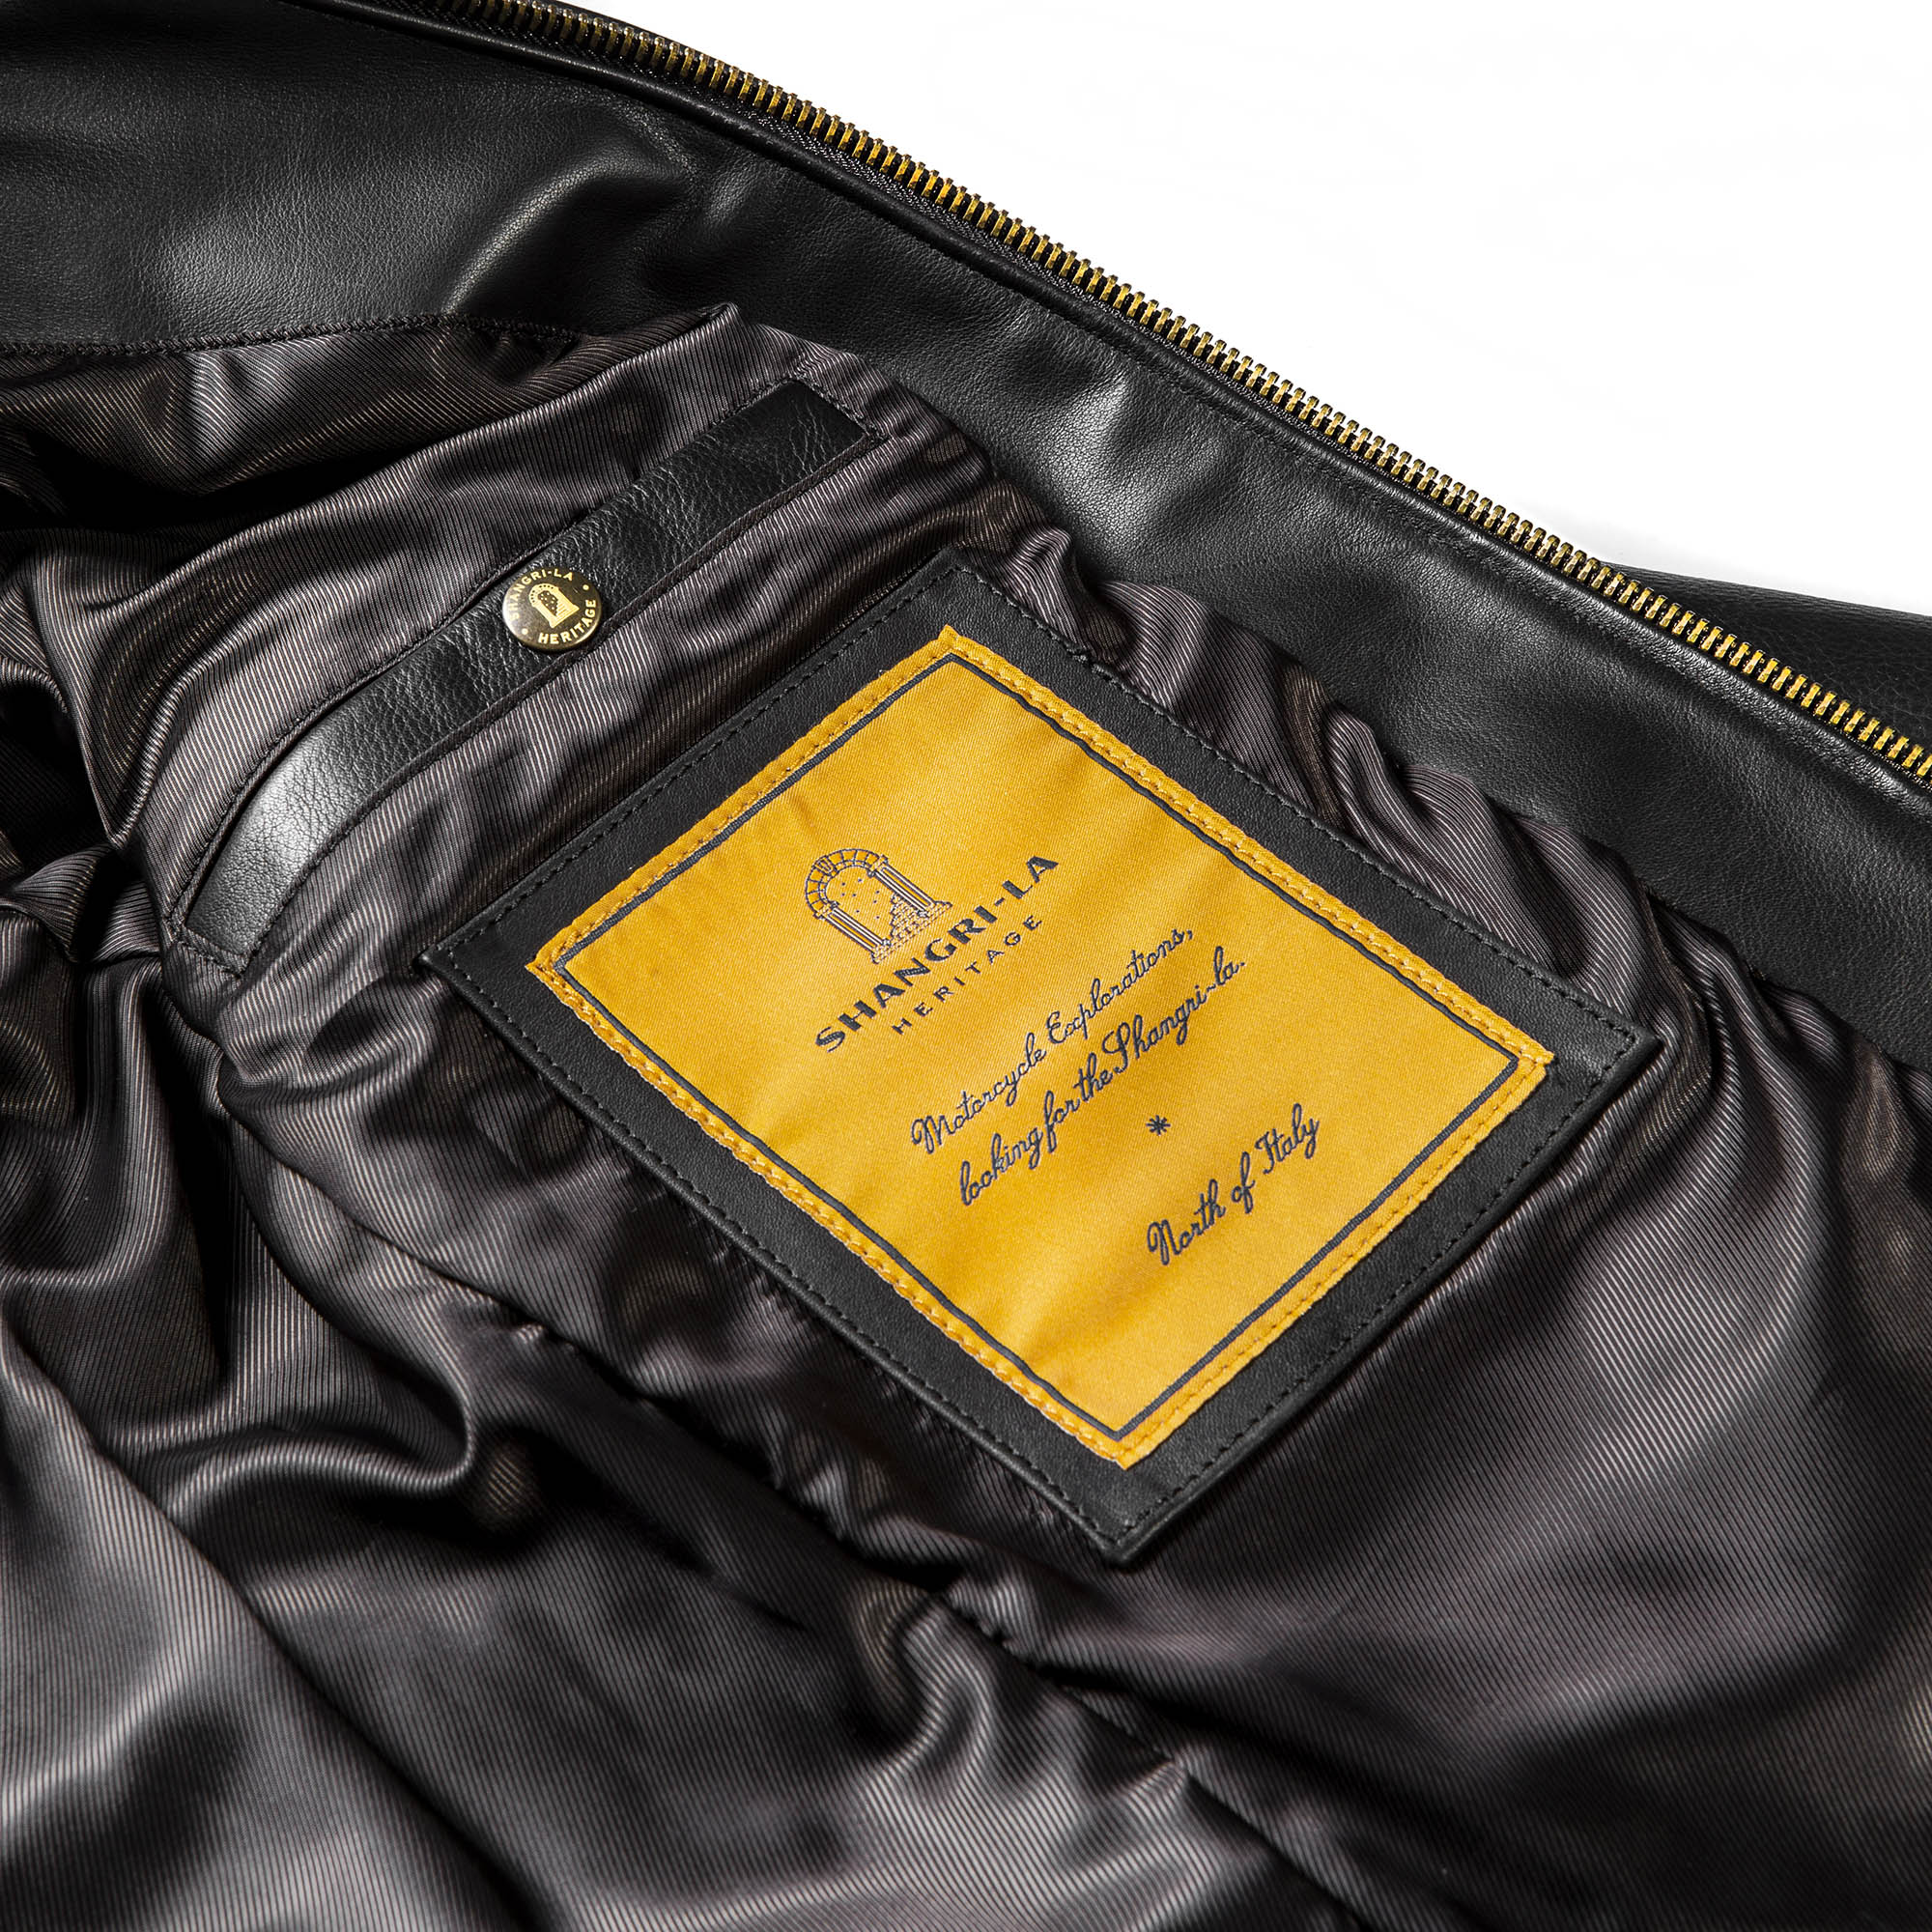 shangri-la-heritage-varenne-black-steerhide-jacket-still-life-pocket-label